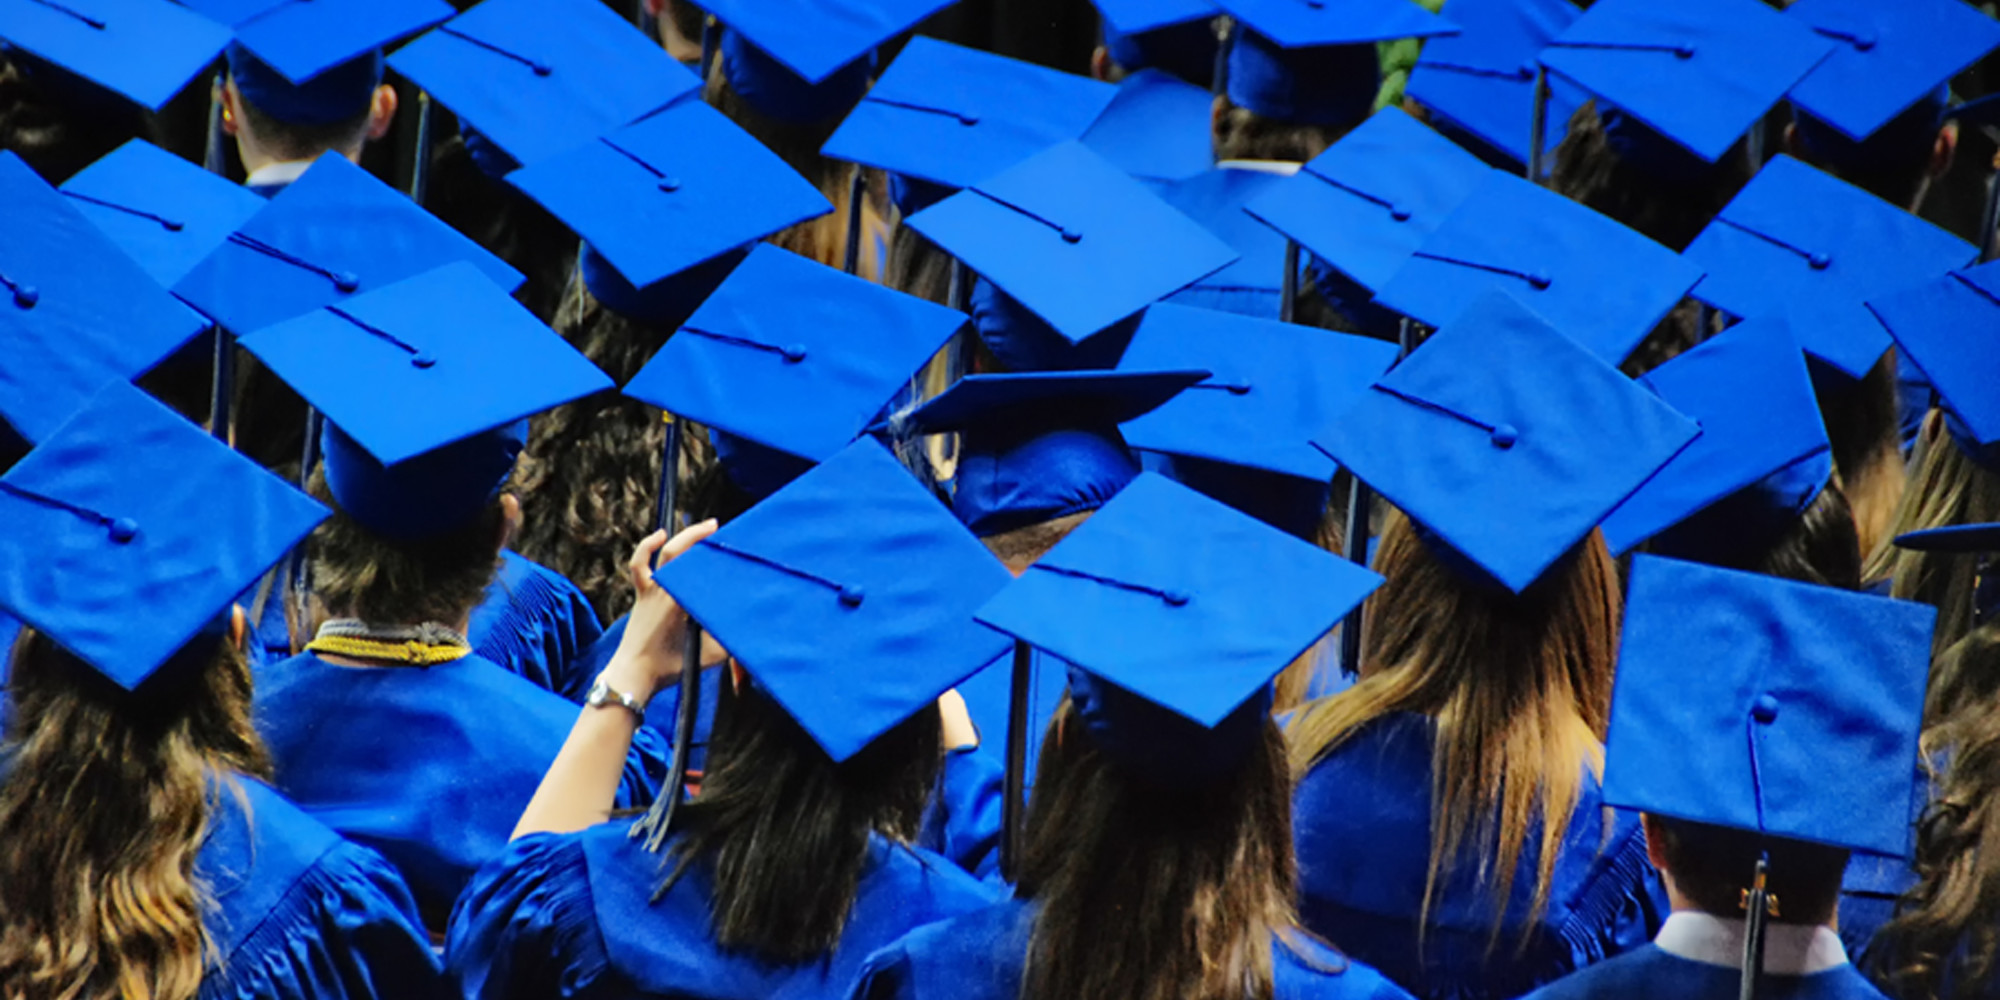 college graduation speech ideas List of 15 graduation speech topics and ideas to use as inspiration for writing a great graduation speech compiled from over 100 best graduation speeches.